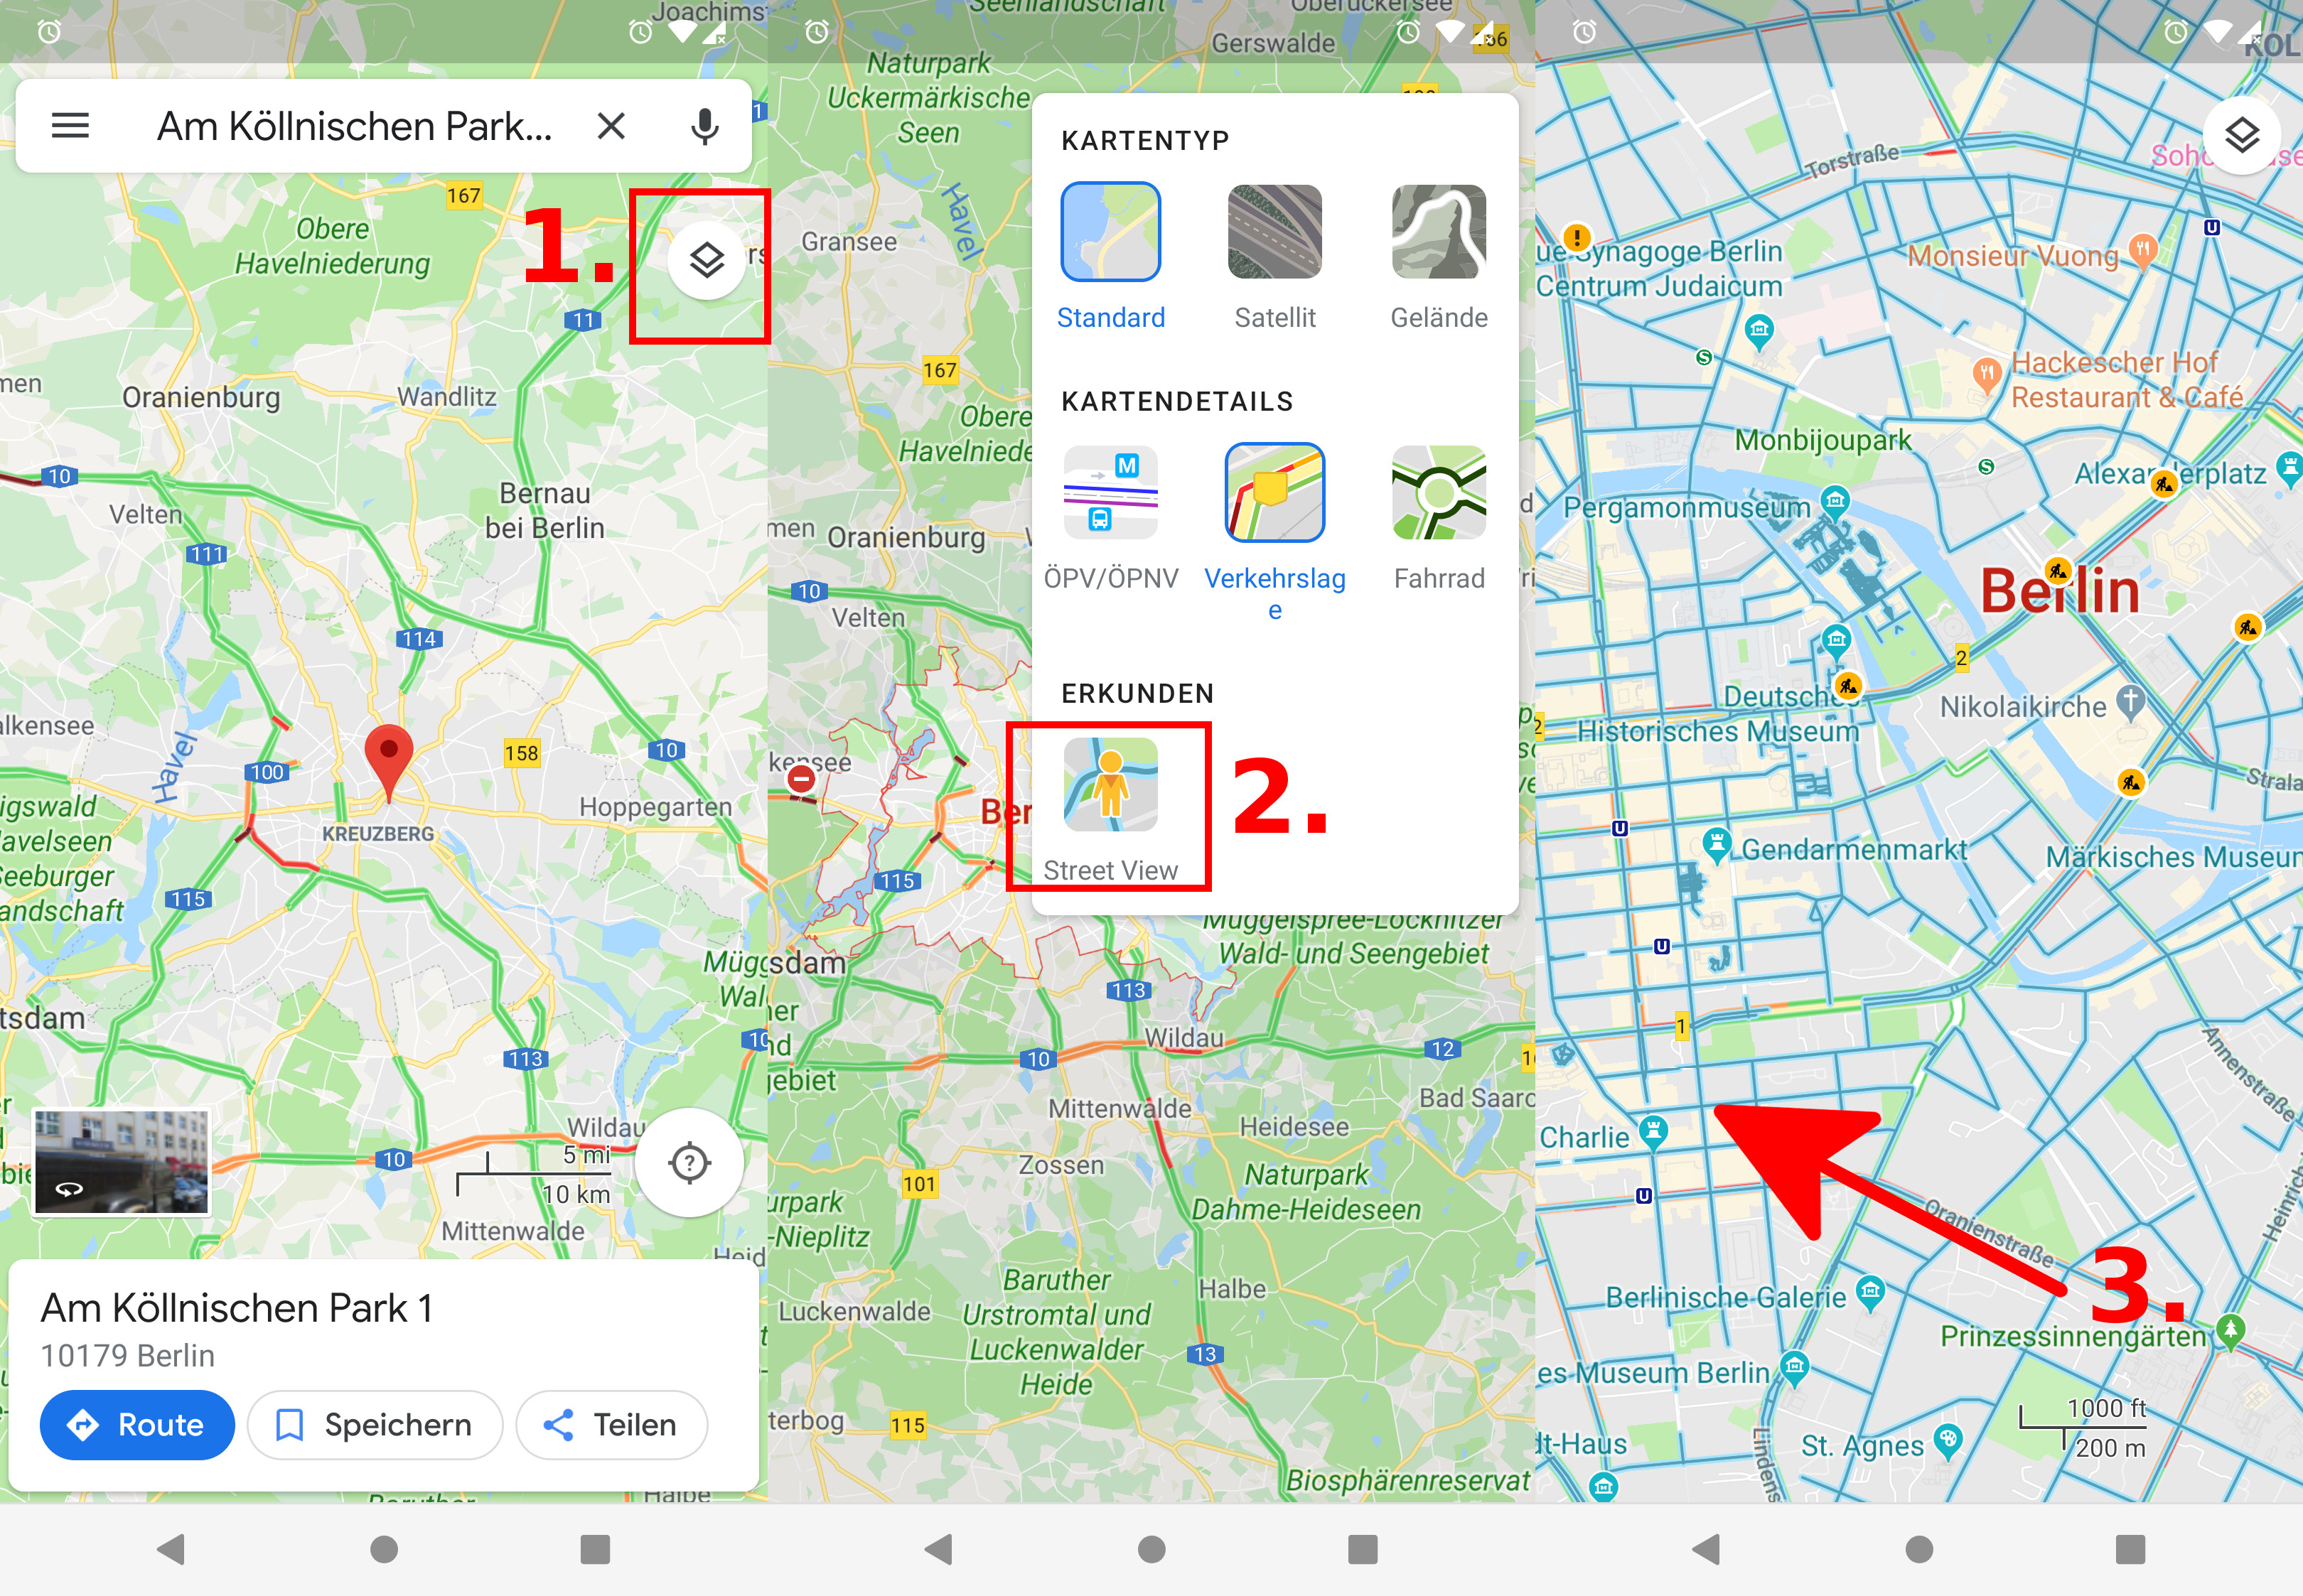 Google Maps: Street View aktivieren – so geht's on amazon fire phone maps, gogole maps, road map usa states maps, online maps, topographic maps, bing maps, android maps, iphone maps, stanford university maps, search maps, ipad maps, googie maps, googlr maps, goolge maps, waze maps, msn maps, aerial maps, microsoft maps, gppgle maps, aeronautical maps,